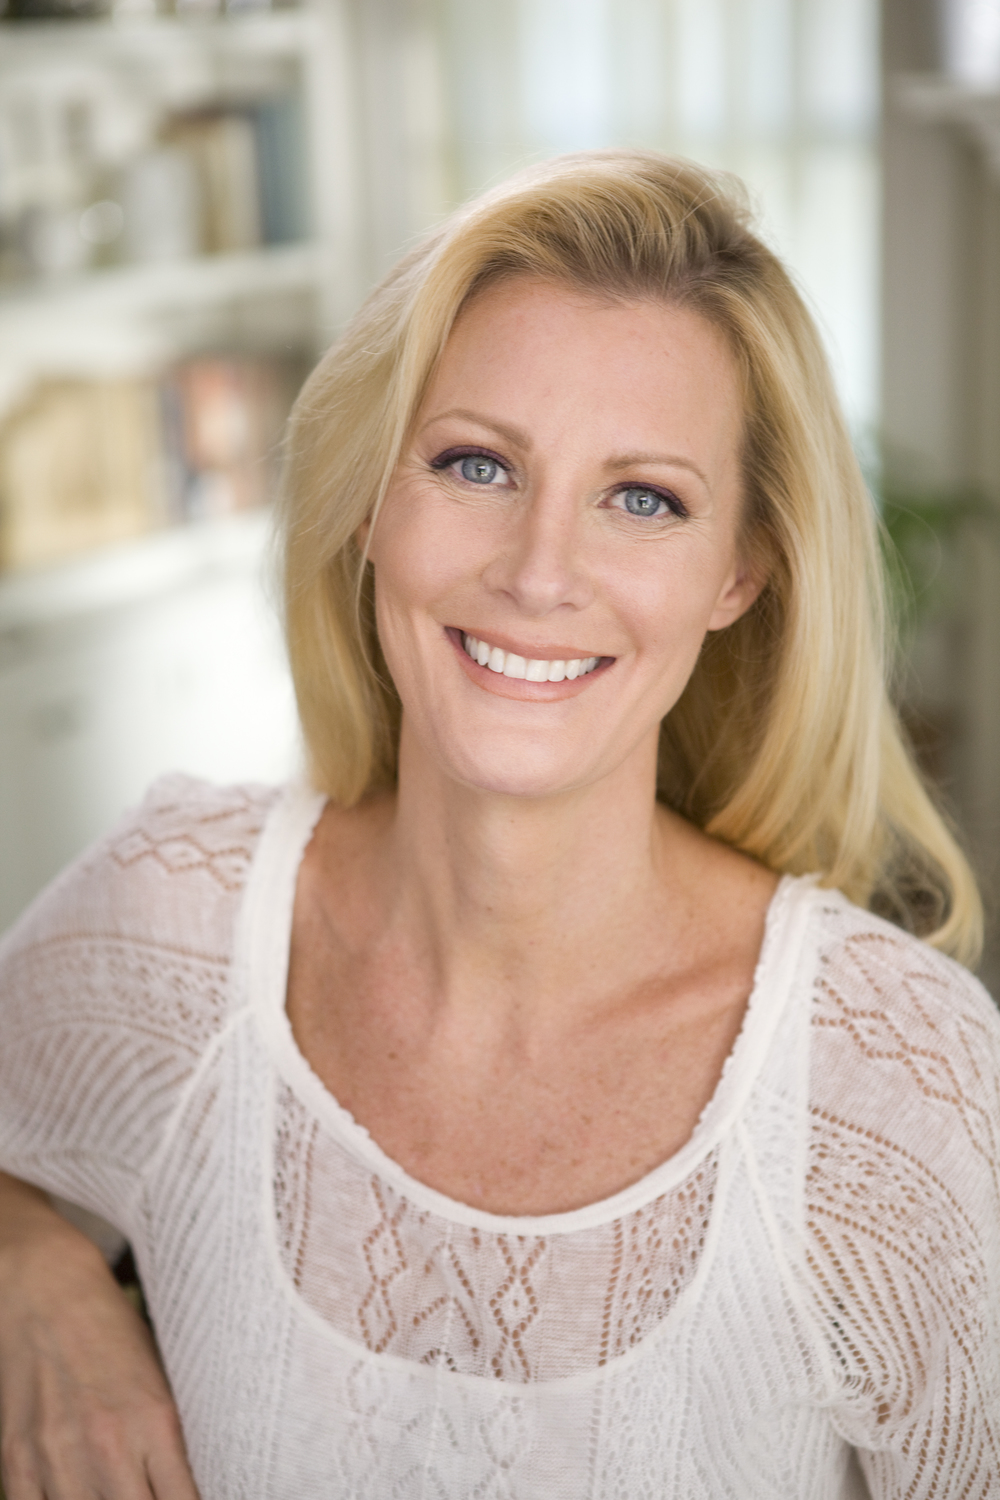 sandra-lee-video-photo-r-fs-_mg_0041.jpg